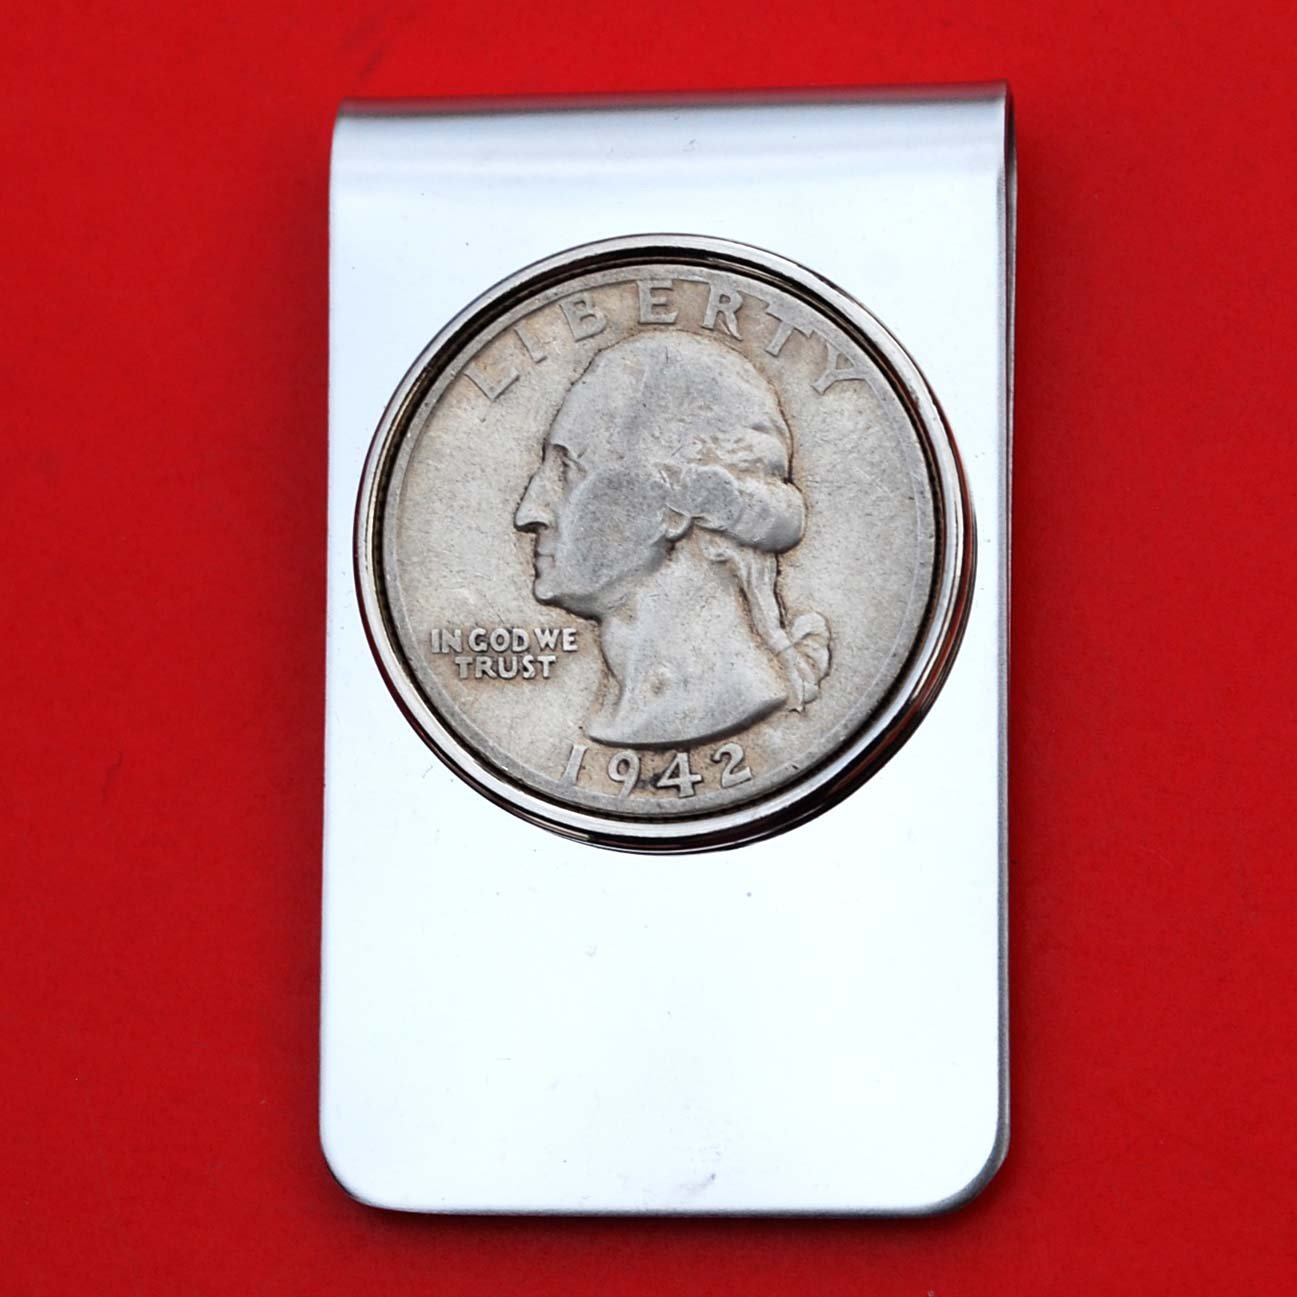 US 1942 Washington Quarter 90% Silver Coin Stainless Steel Money Clip New